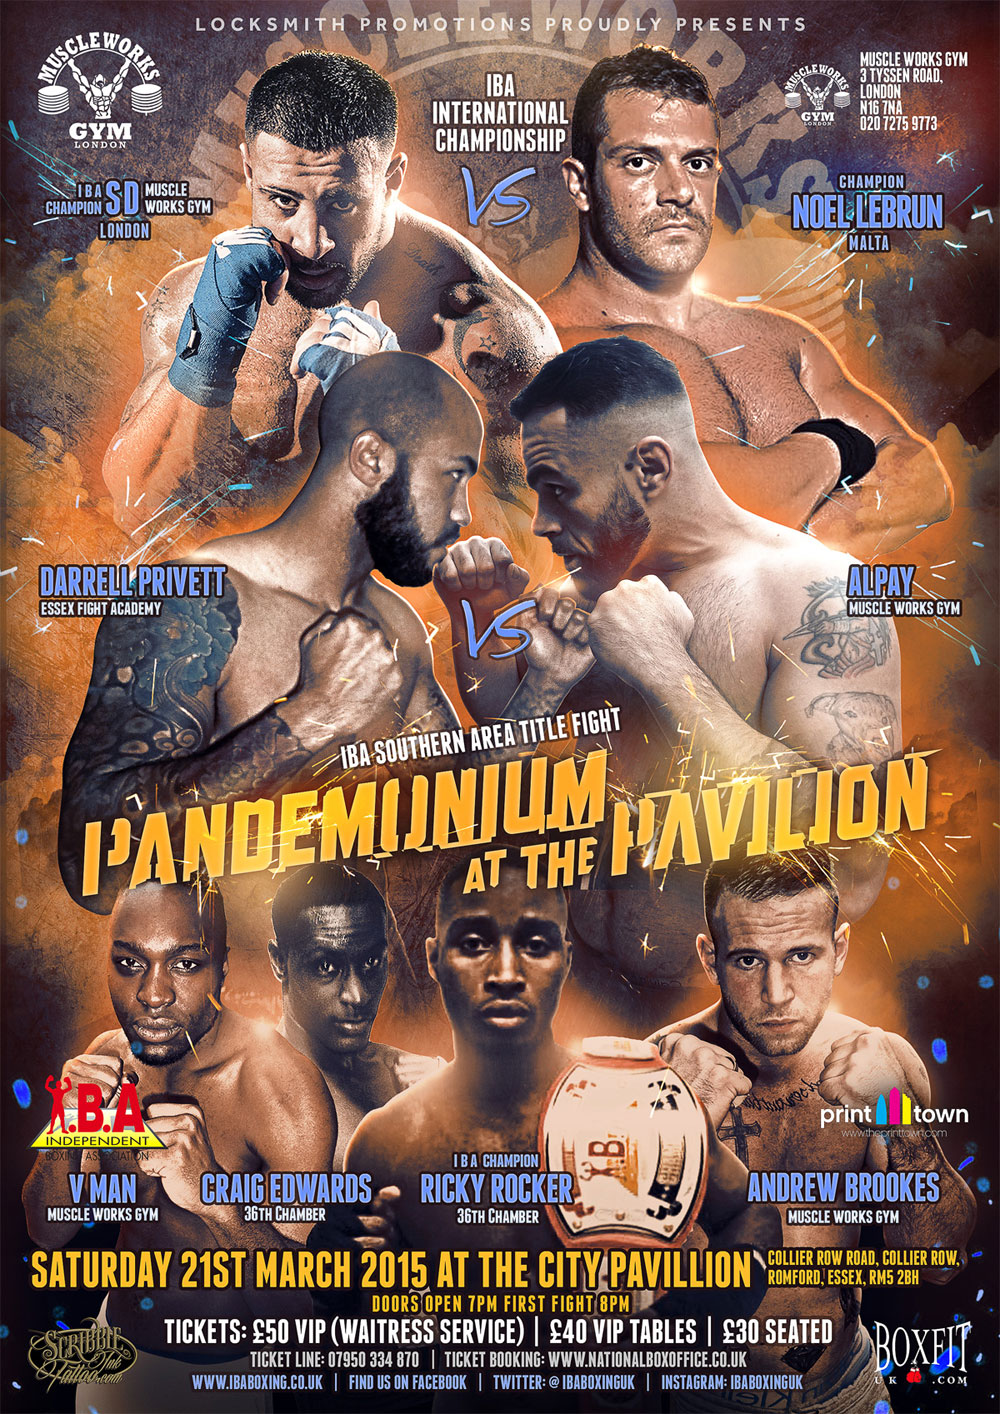 fight poster for Pandemonium at the Pavillion